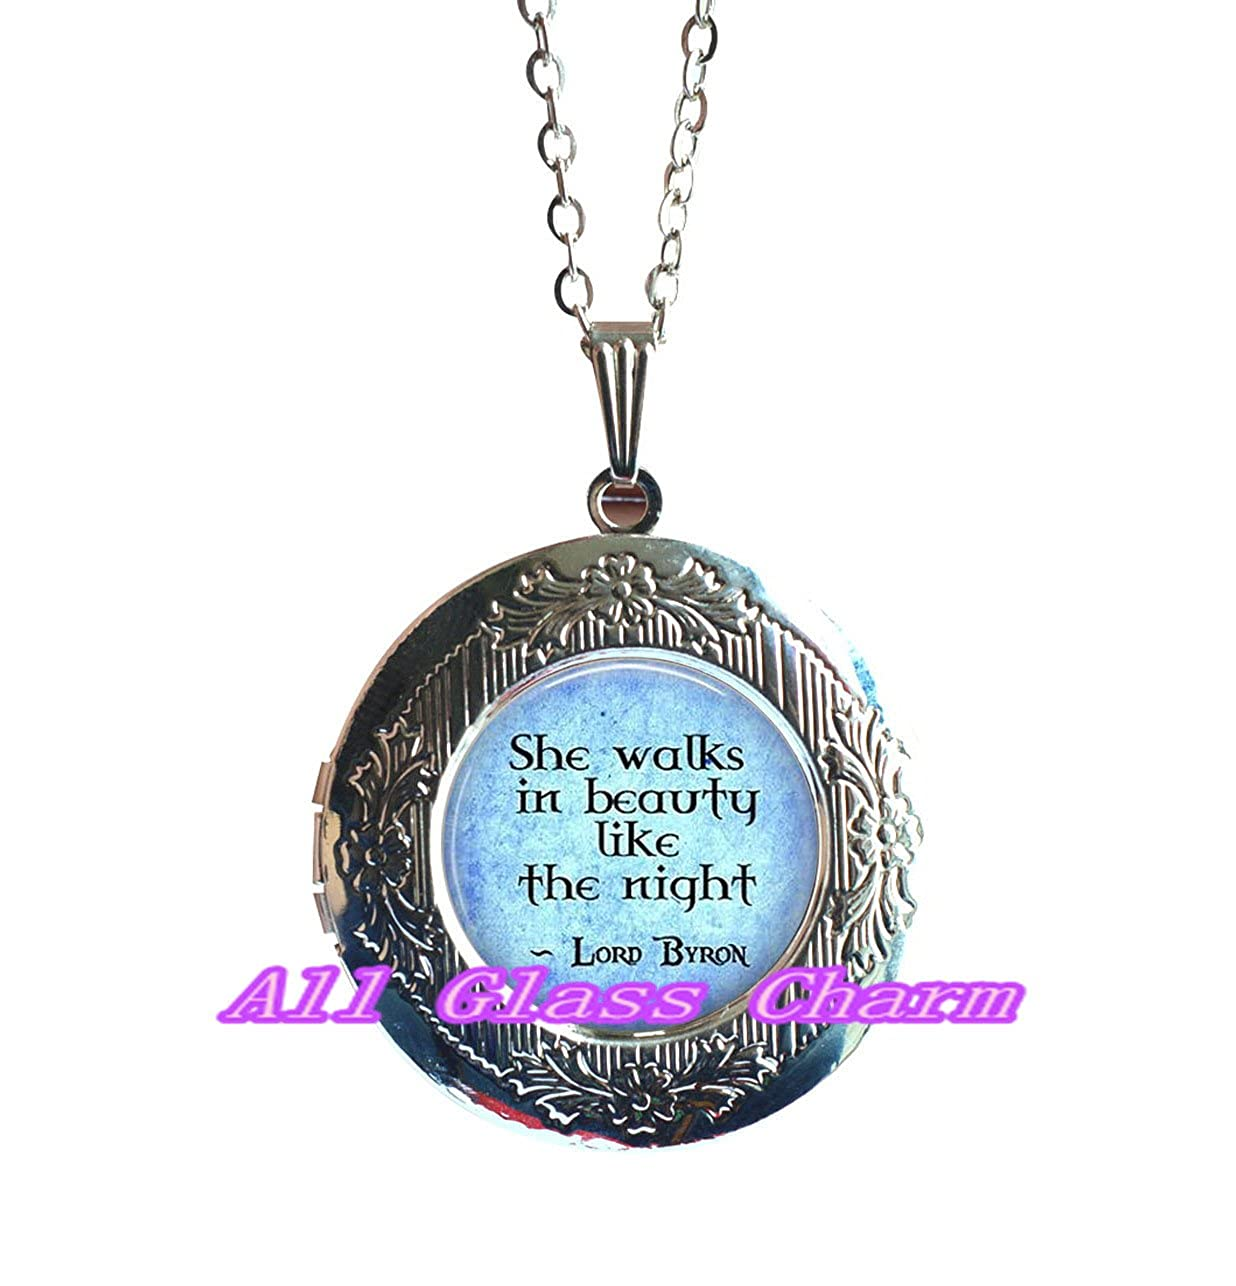 Literature Locket Pendant Poetic Jewelry Beautiful Locket Necklace,Quote She walks in beauty like the night Literary Gift Poem Locket Necklace,AS0238